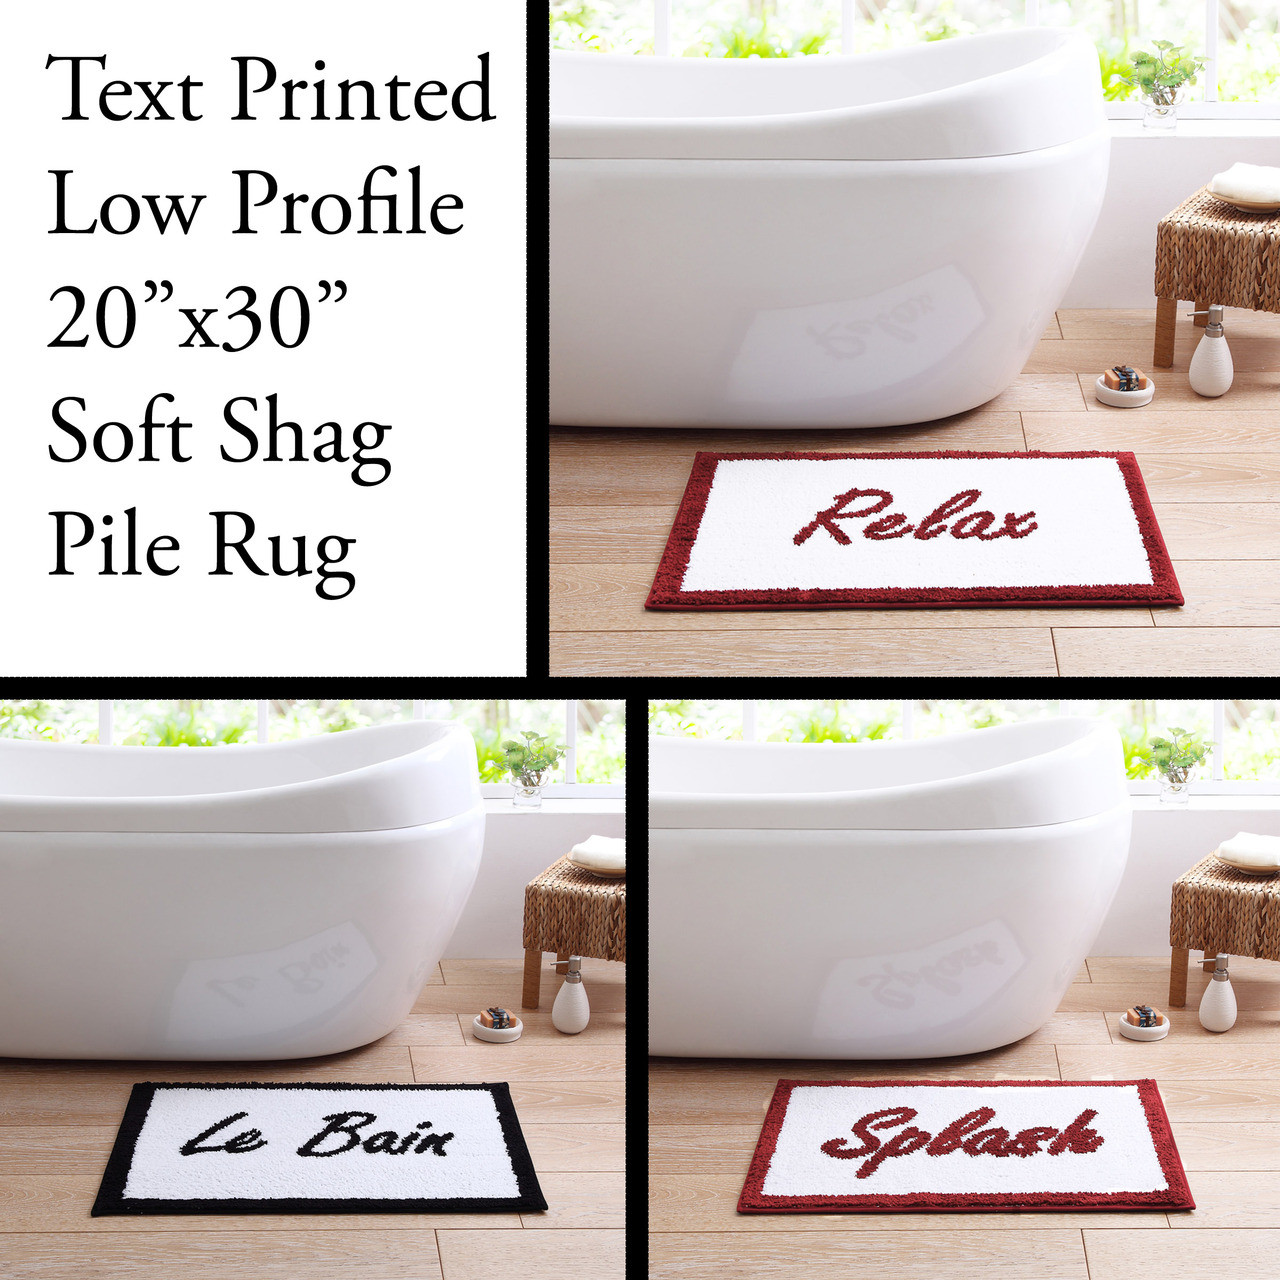 Low Pile 20 X30 Text Printed Bath Rug With Non Slip Backing Le